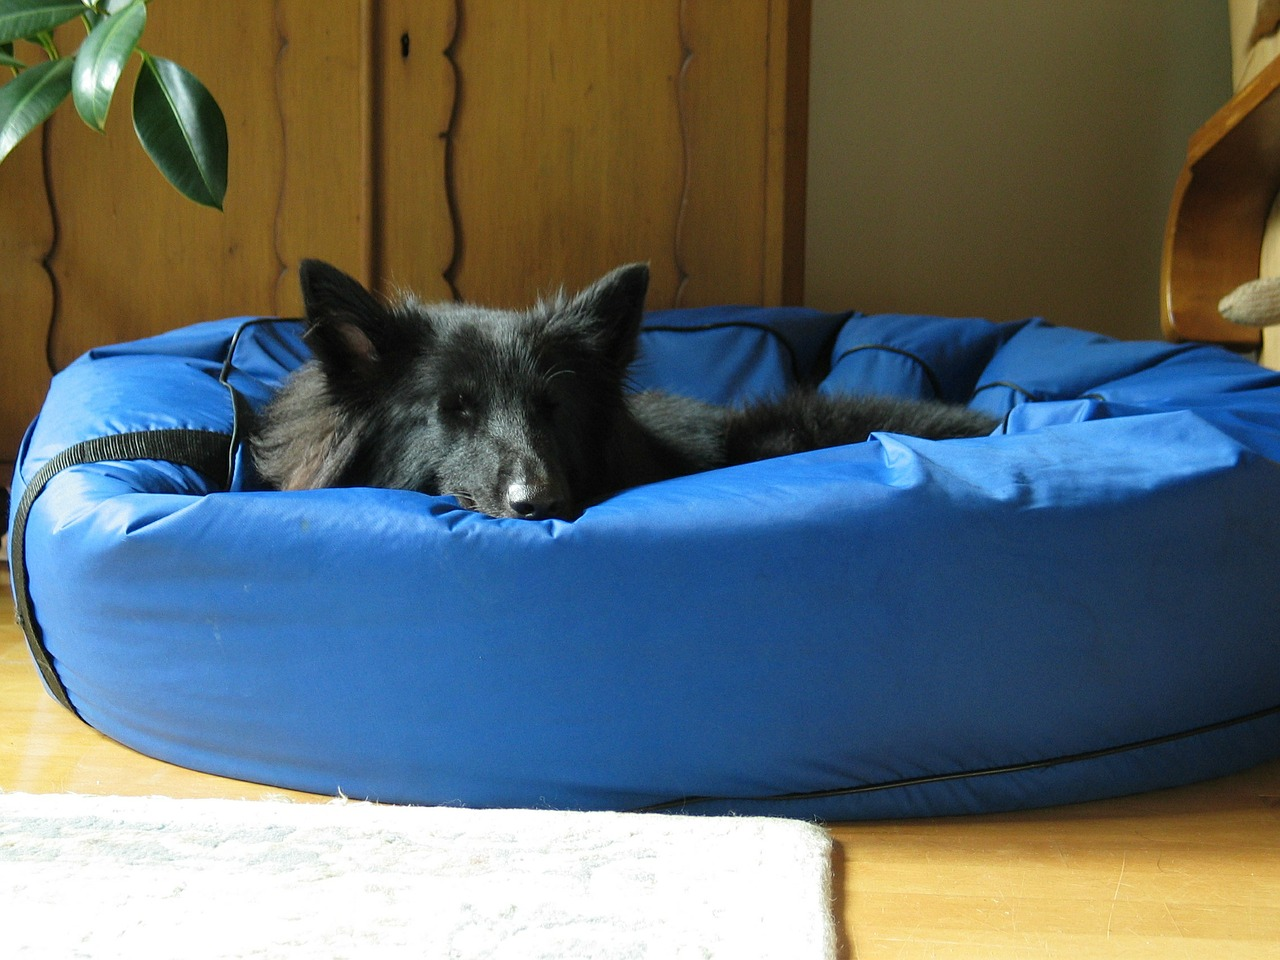 puppy relaxing in dog bed